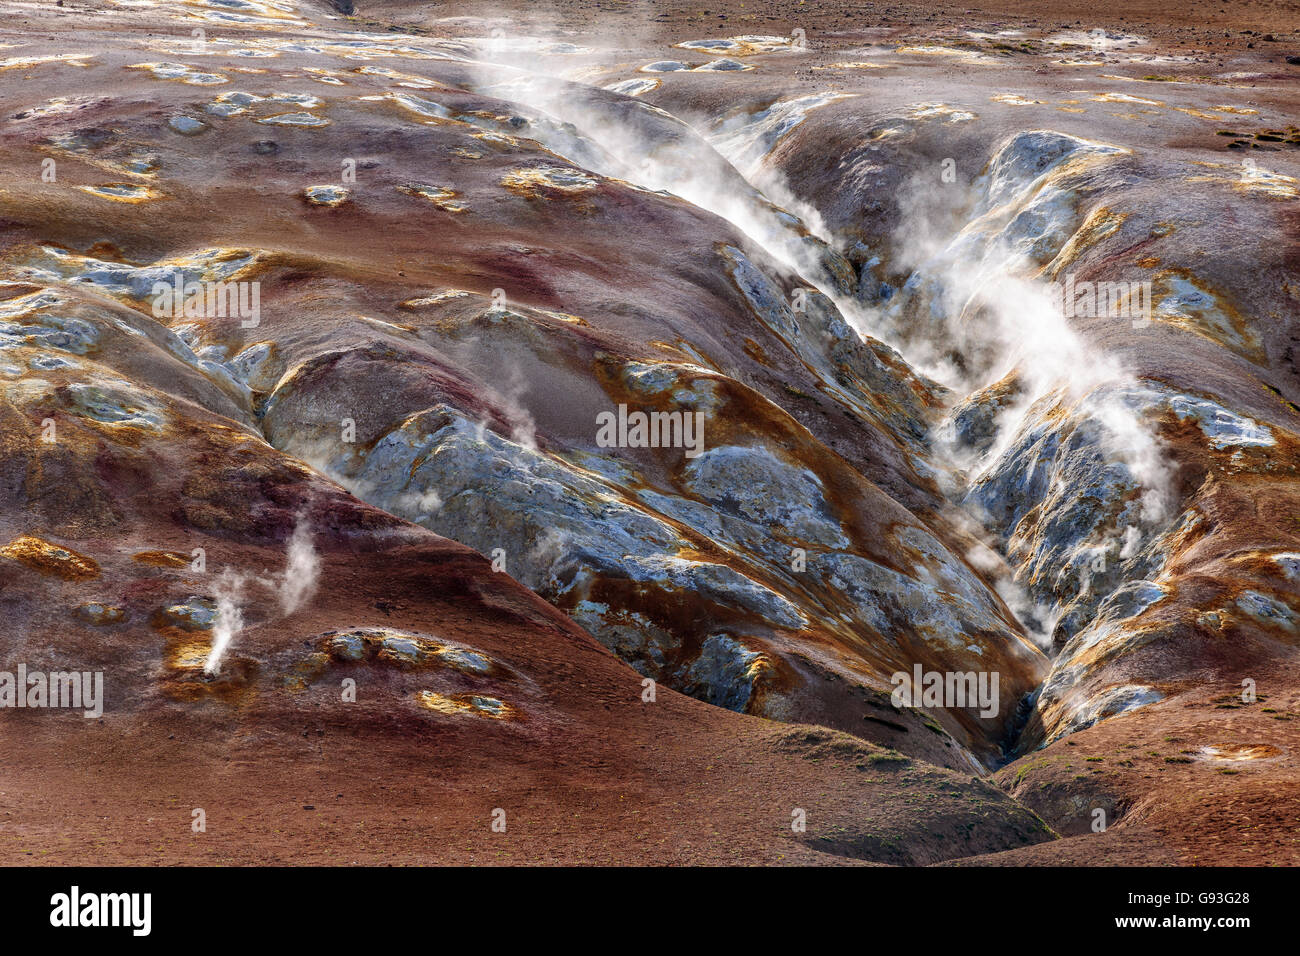 Solfataras, steam vents in the geothermal area of ​​Hverarönd, Namafjall, Island - Stock Image